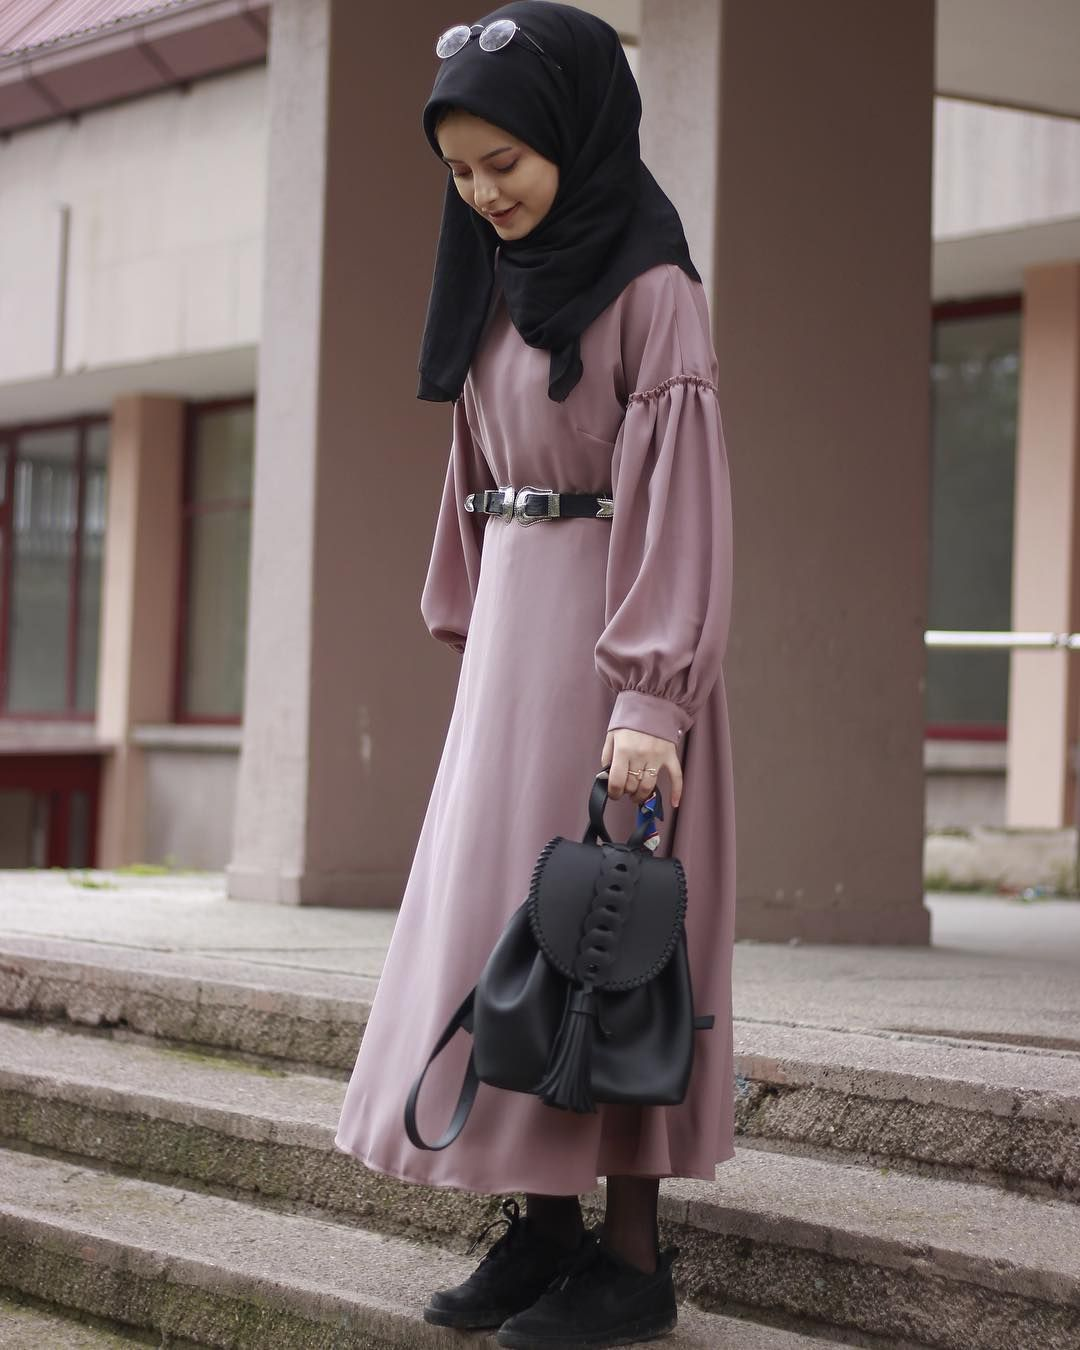 Fashionable hijab styles step by 21